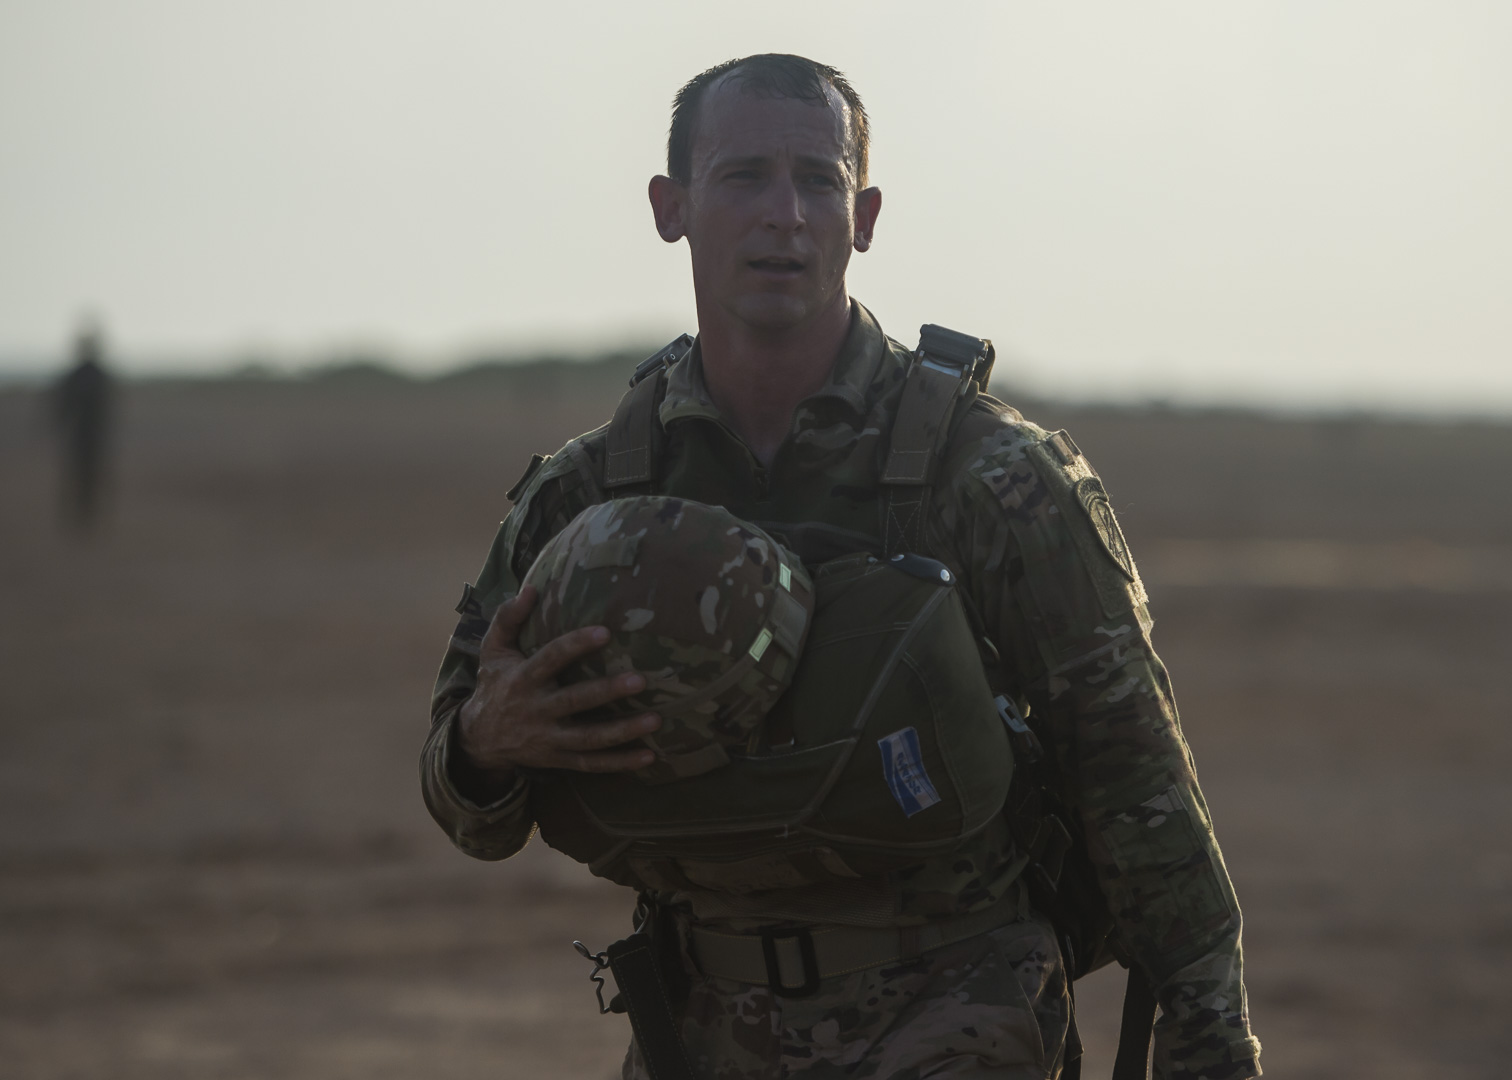 U.S. Army Lt. Col. Cecil Piazza, commander, 411th Civil Affairs Battalion, assigned to Combined Joint Task Force-Horn of Africa, walks away from the drop zone after a static-line jump with American and coalition partners, outside Djibouti City, Djibouti, Sept. 29, 2019. American service members and coalition partners jumped together to celebrate the Feast Day of Archangel Michael, the patron saint of paratroopers. (U.S. Air Force Photo by Senior Airman Codie Trimble)